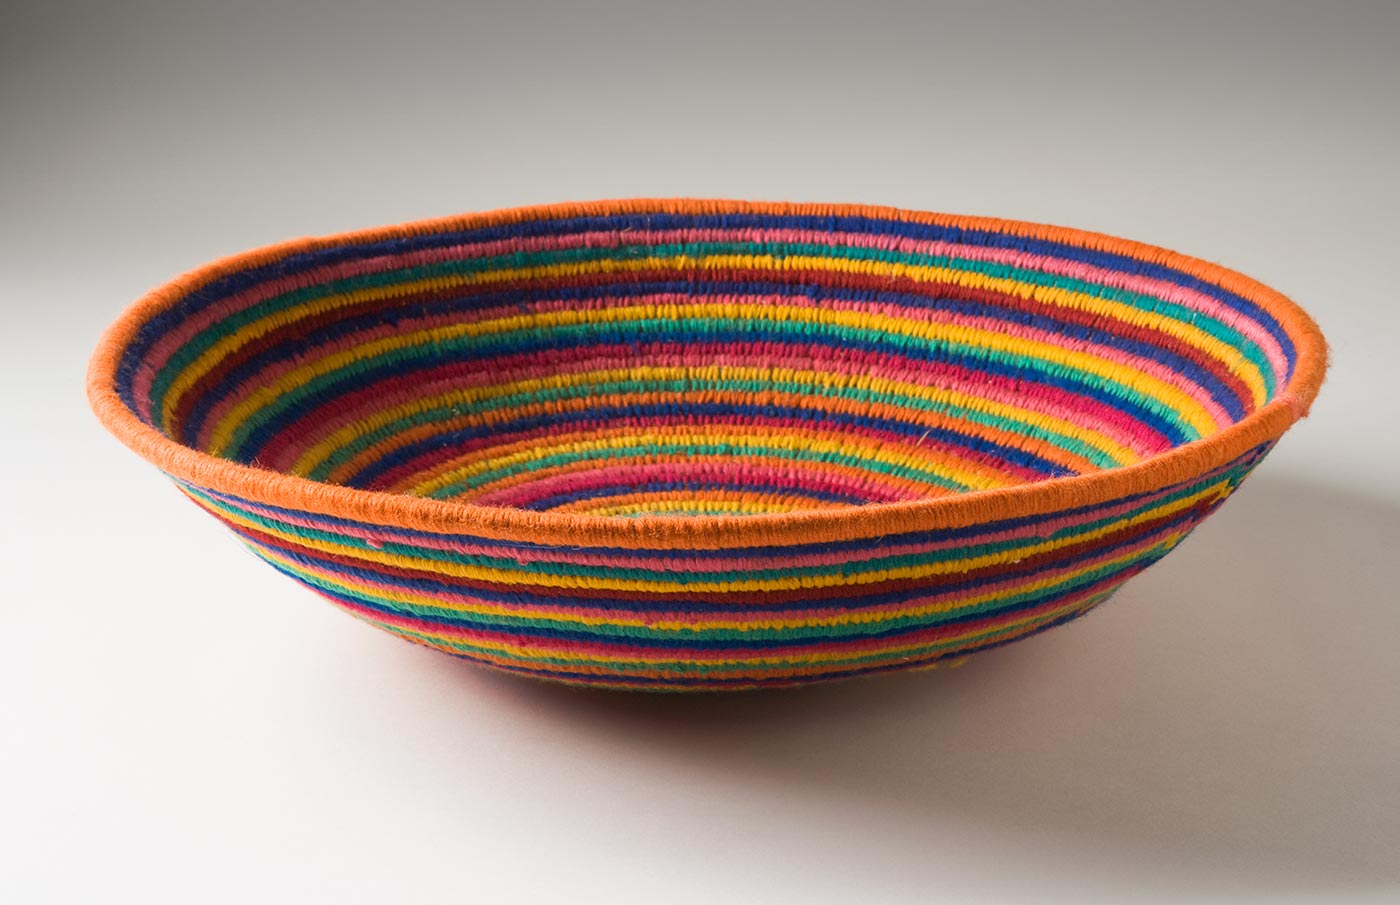 A multicoloured circular coiled yarn and plant fibre bowl-shaped basket. The centre of the basket is in pale pink yarn followed by horizontal stripes of yarn in lavender, pink, green, yellow, orange, blue and dark pink. - click to view larger image